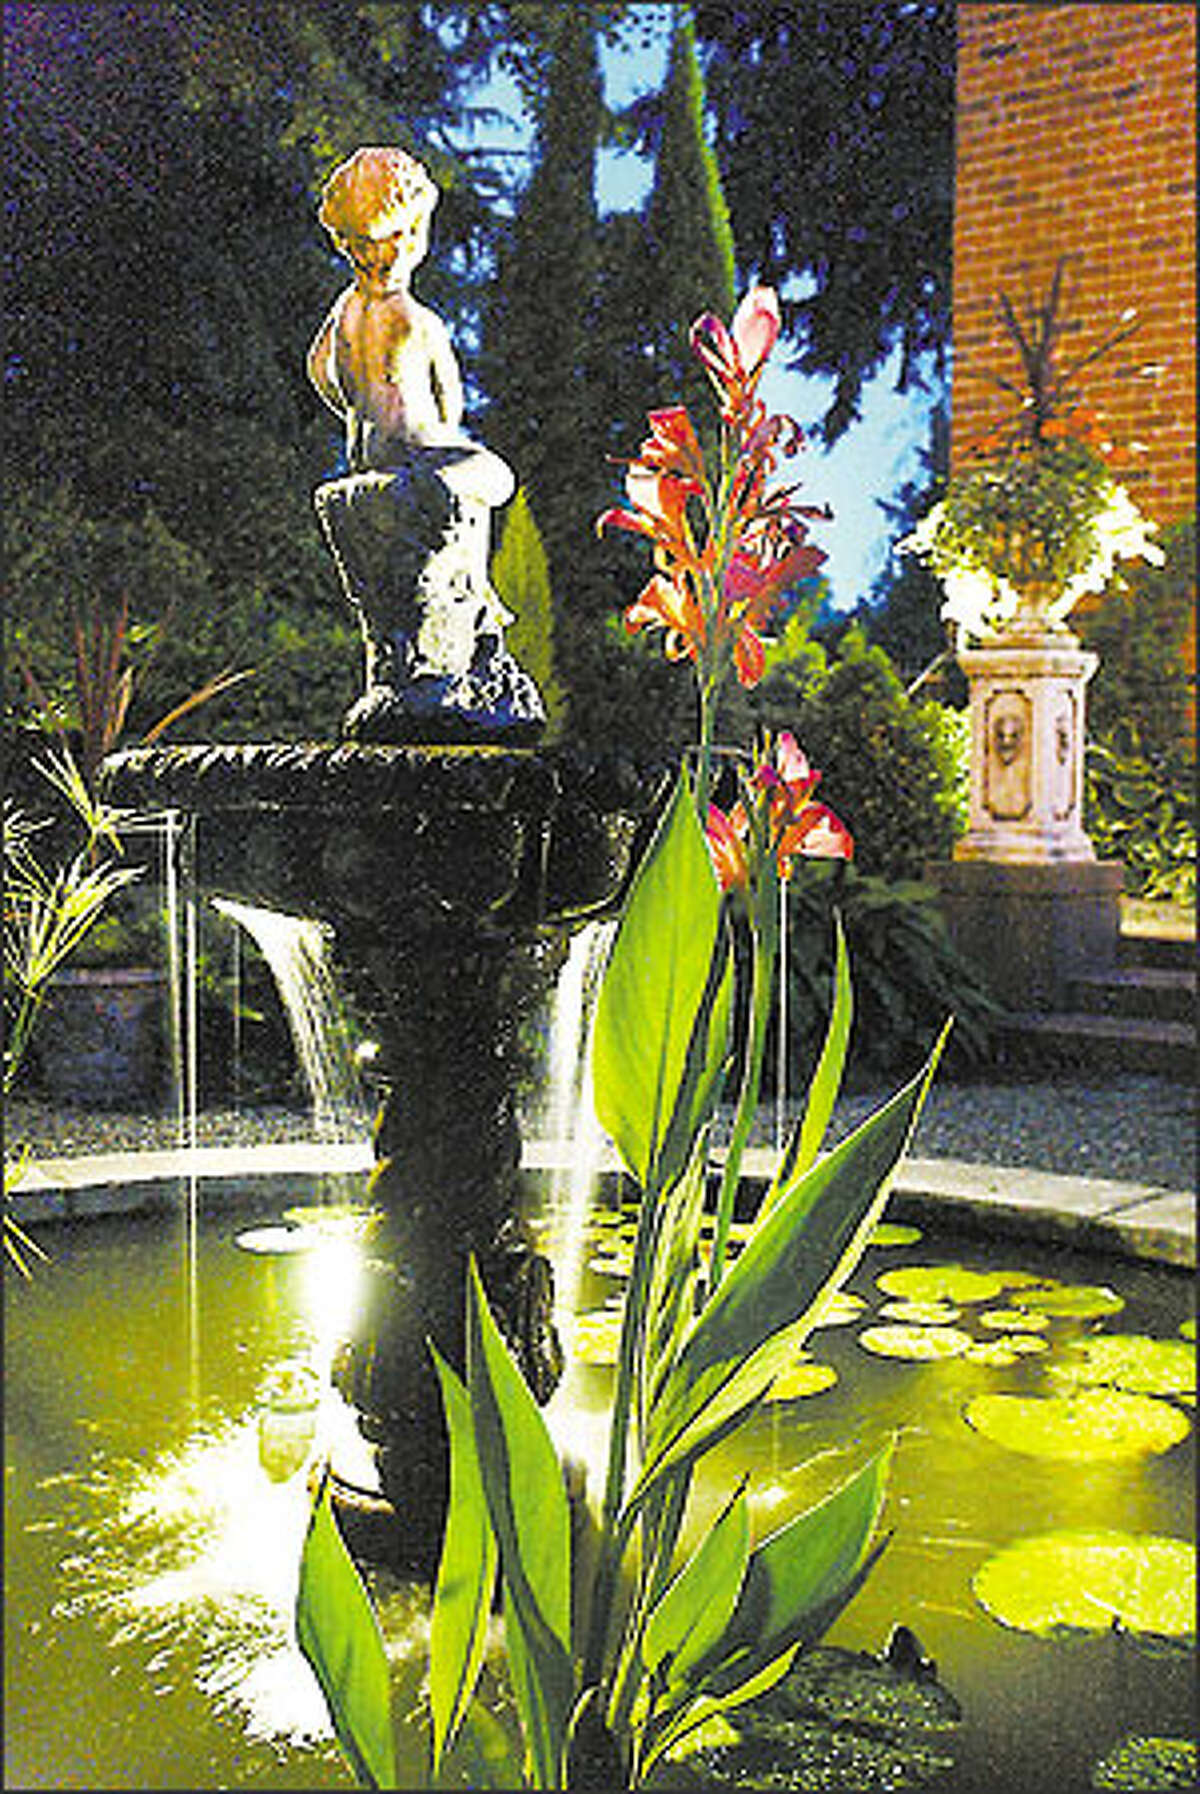 It's not just for security anymore: Outdoor lighting also is seen as an art form that creates a mood by highlighting architectural and garden features. The lighting scheme for this fountain and pool was designed by Seattle landscape architect Brooks Kolb.